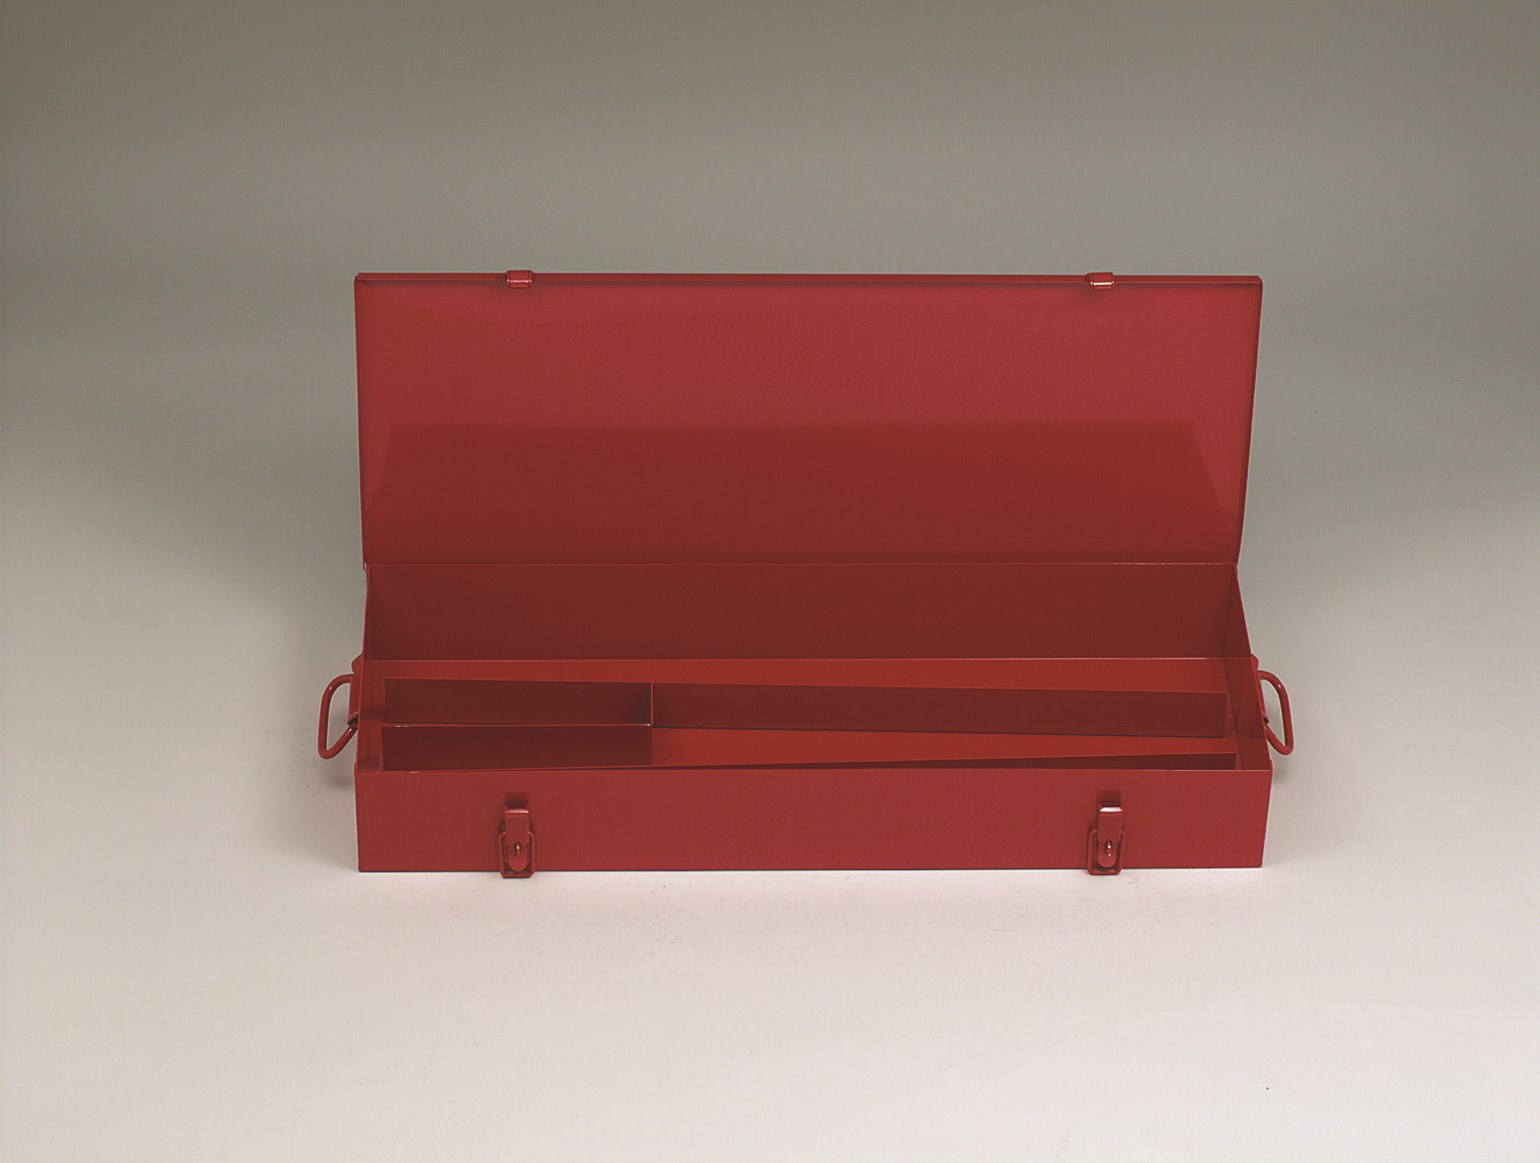 299 Metal Box for Sets 821, 829, and Special Sets - 31-1/2